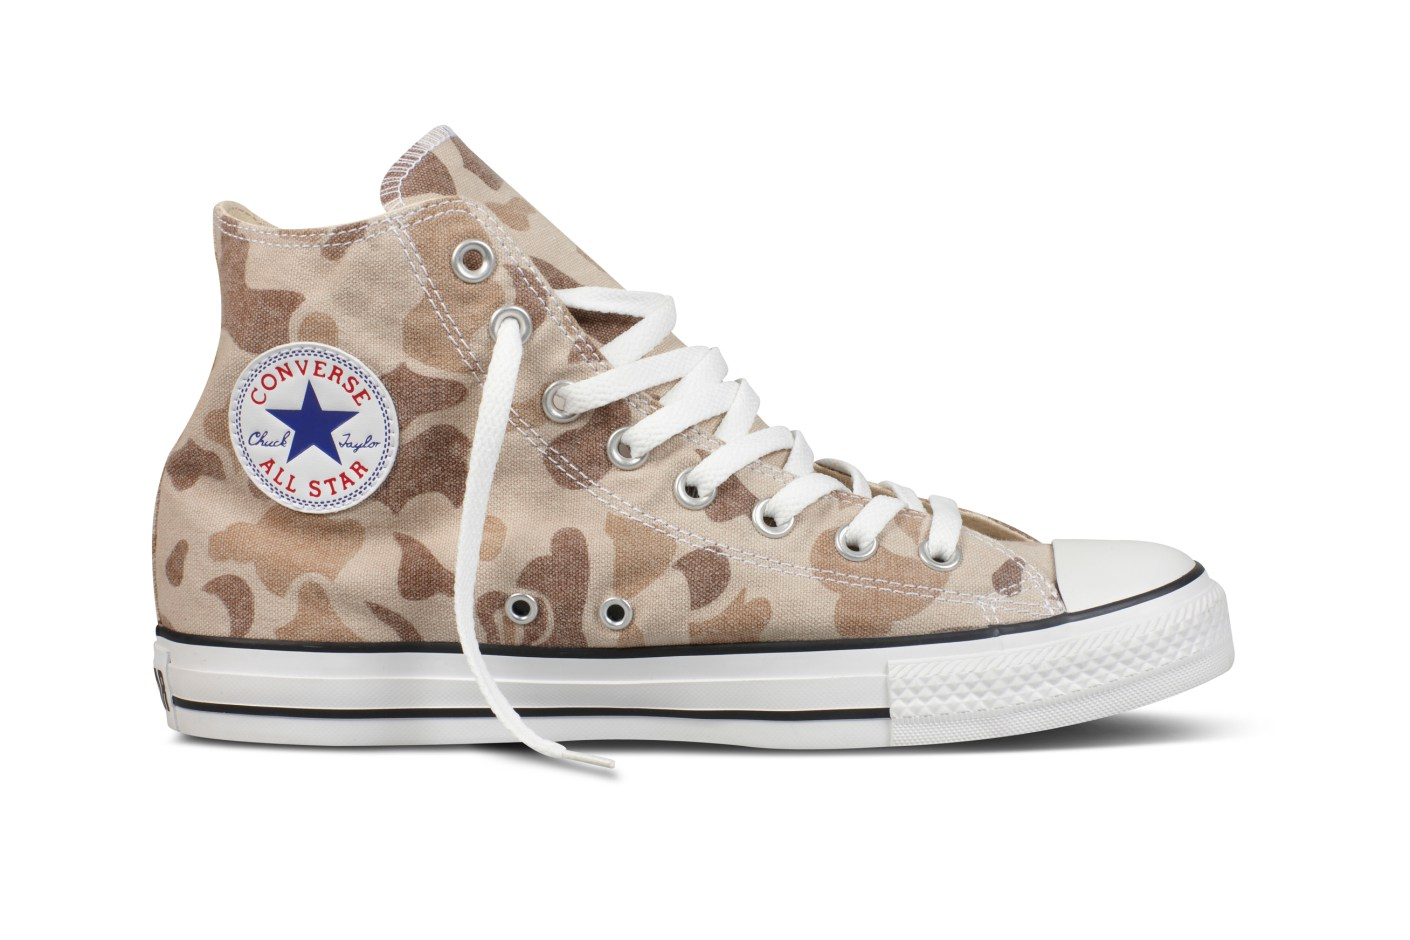 Image of Converse 2013 Spring/Summer Chuck Taylor All Star Collection